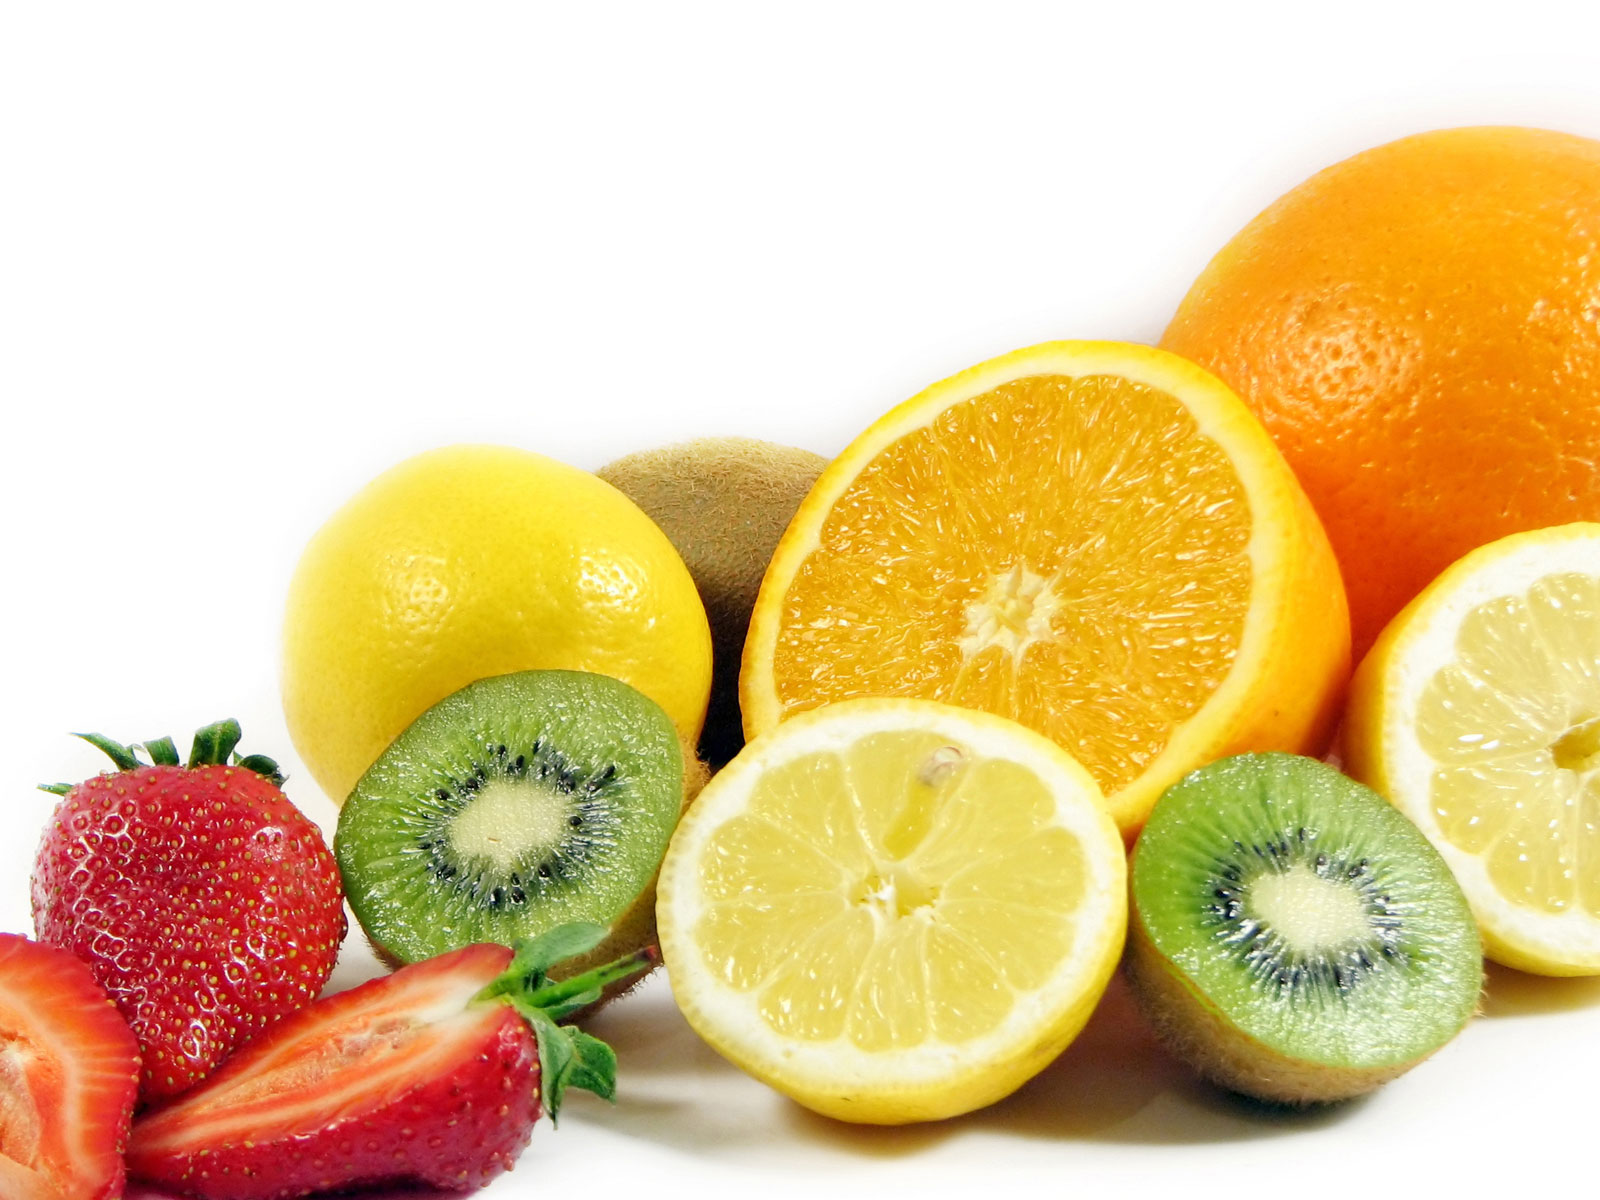 Fresh Fruits Wallpapers Desktop Mix Fruits Mobile 1600x1200